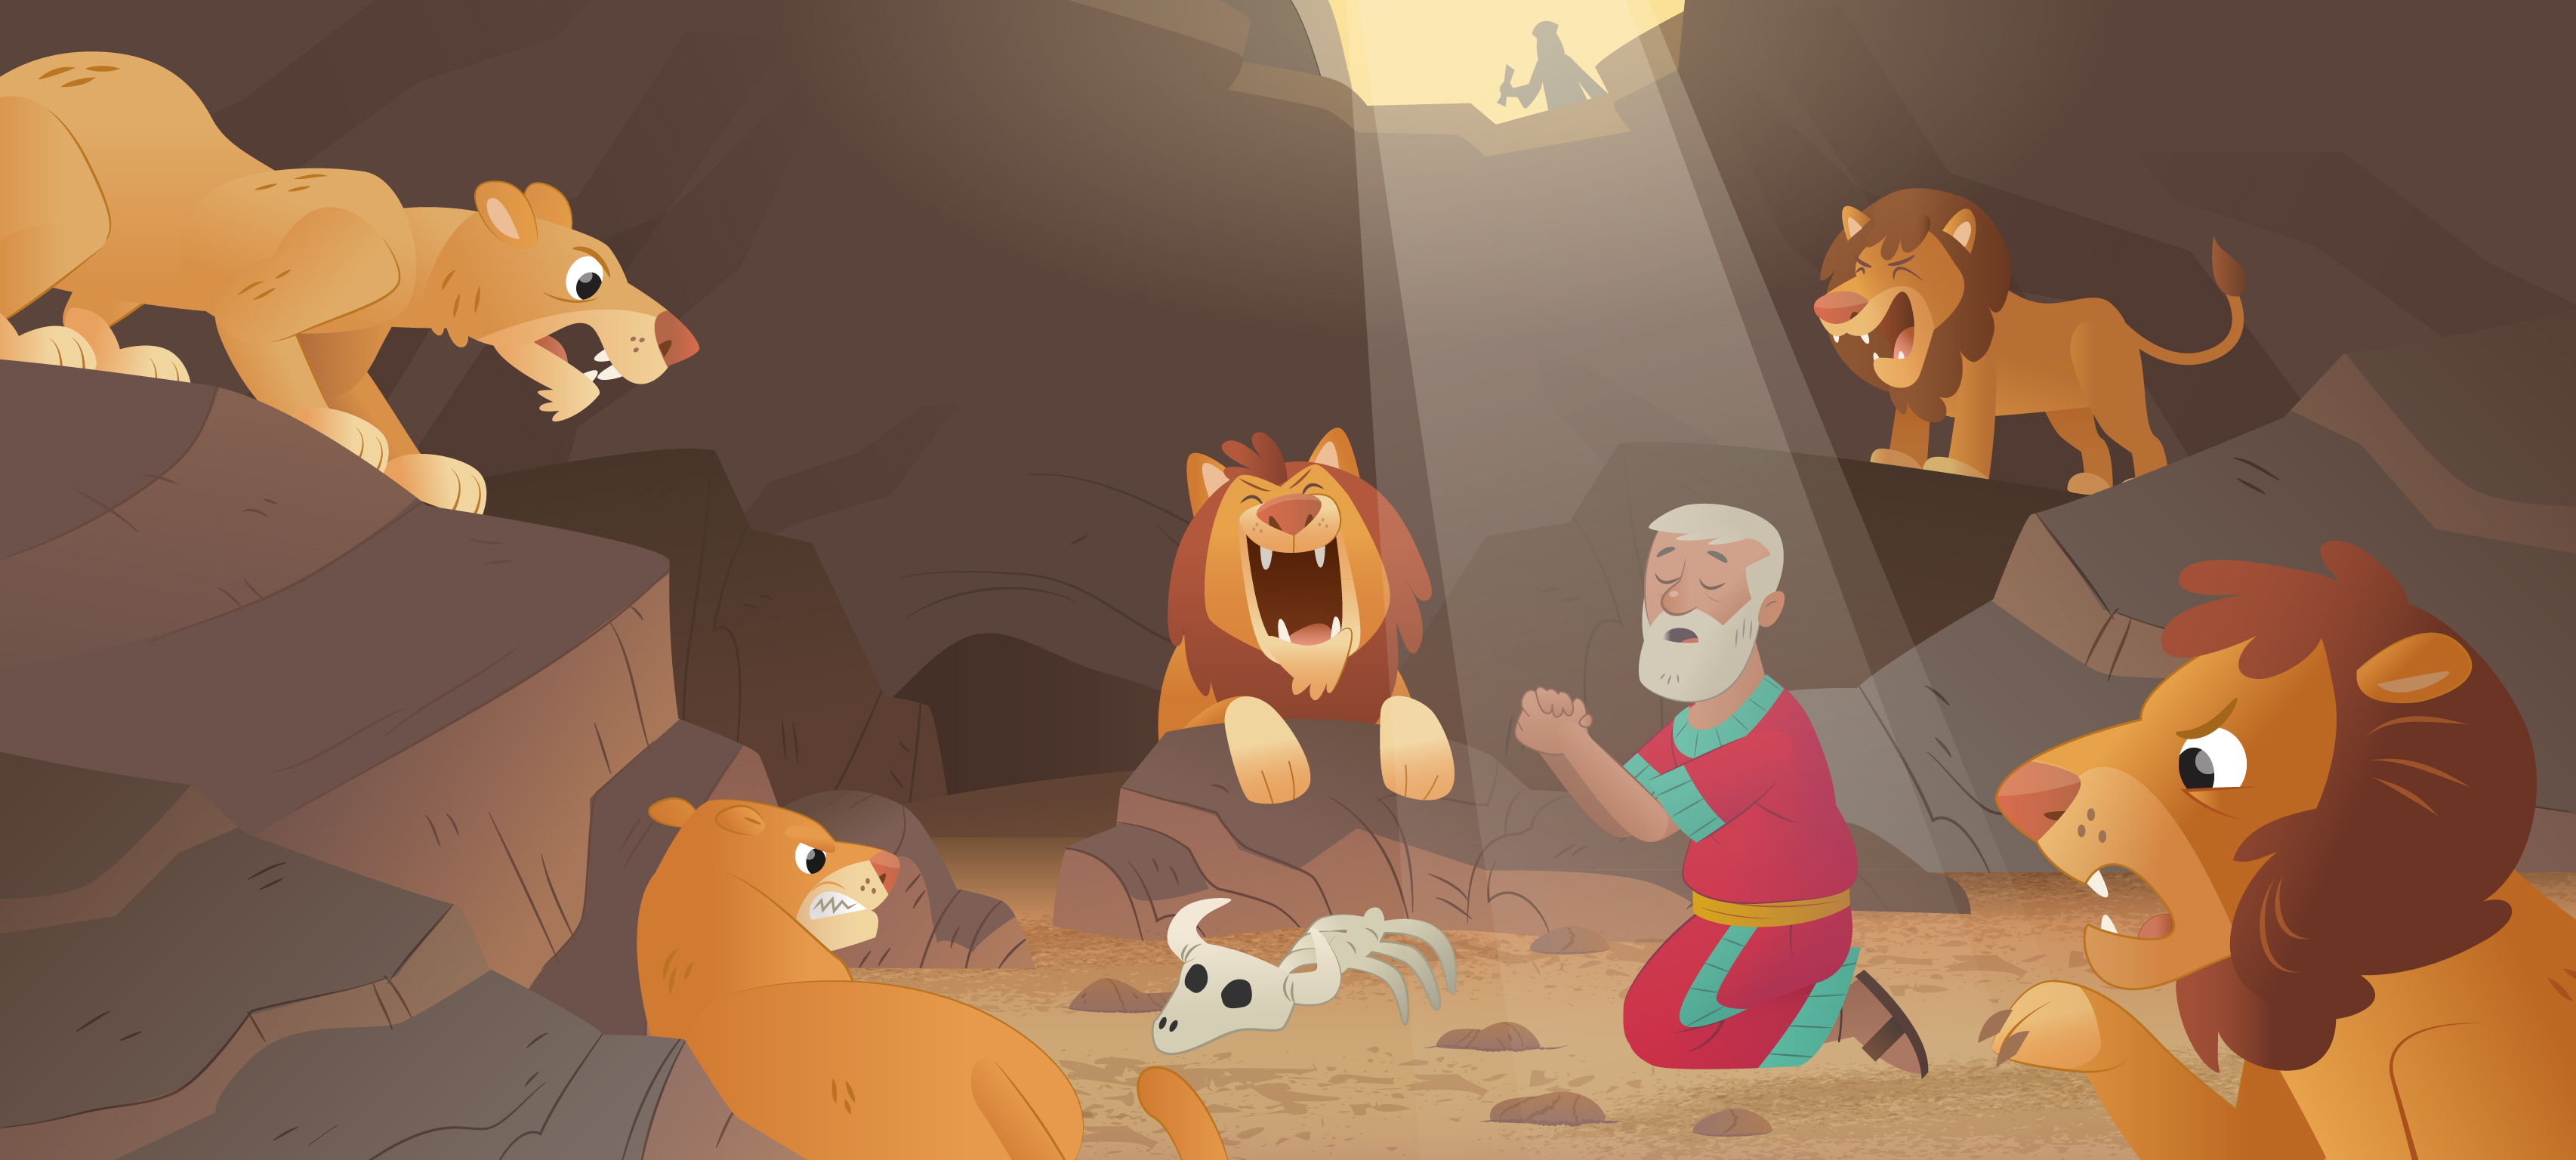 RoaringRescue_Scene5a_FINAL